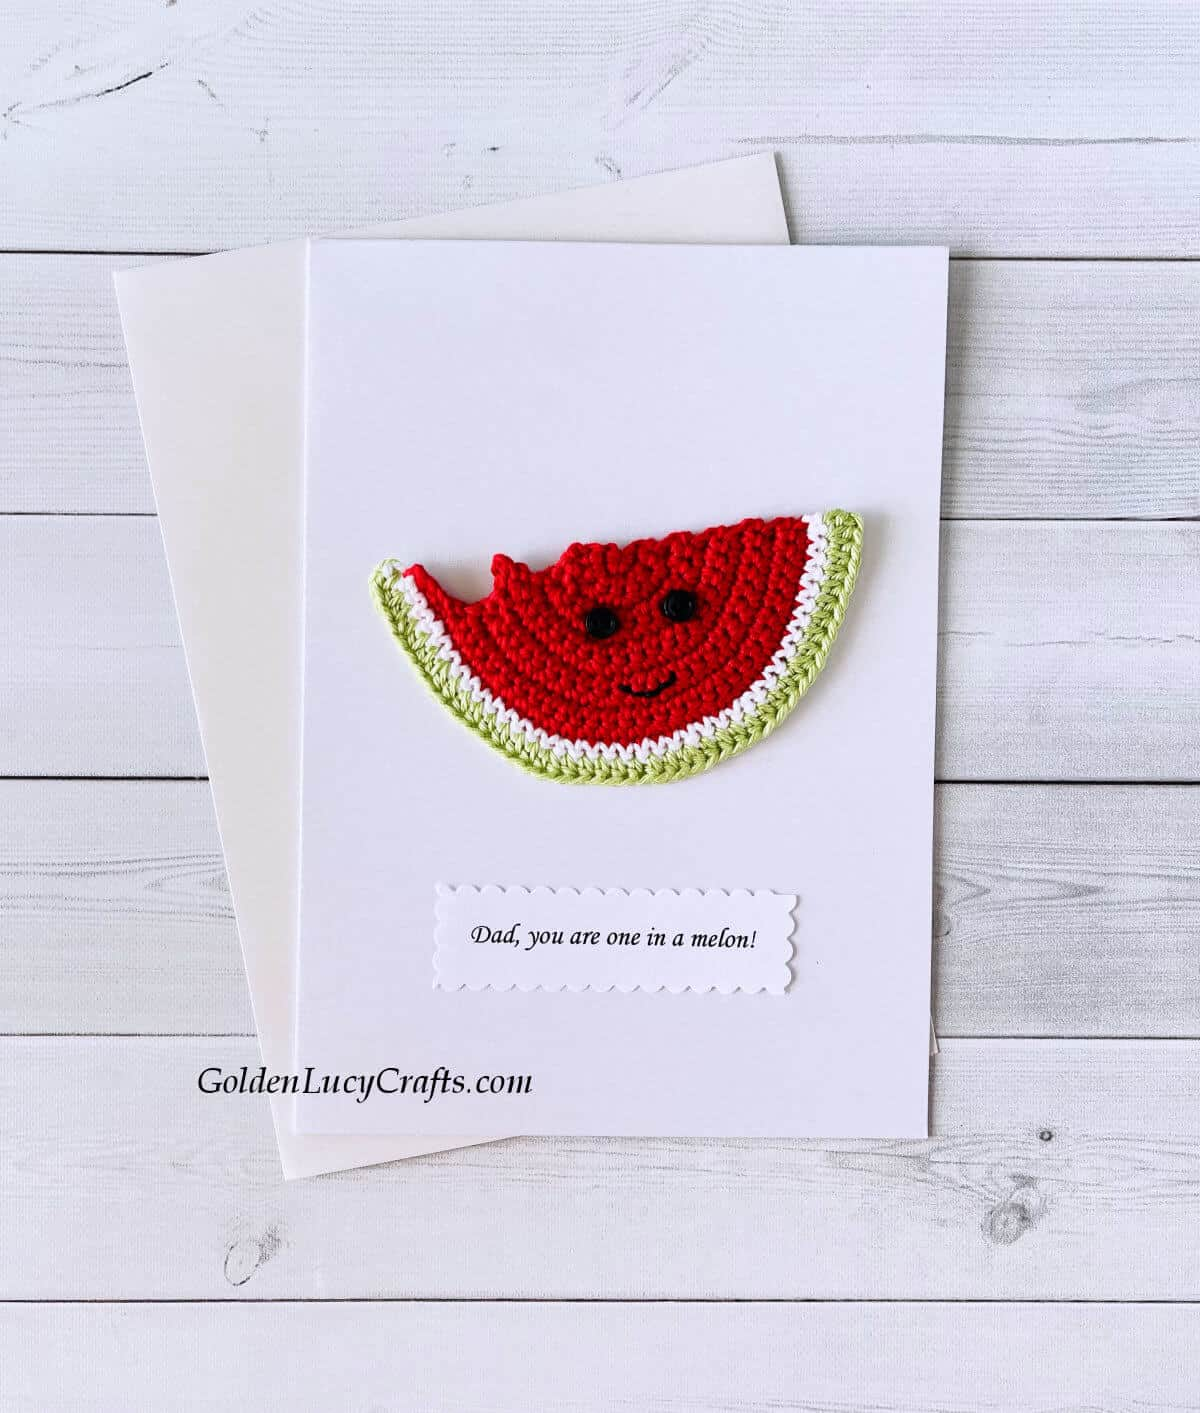 """Crochet watermelon slice applique on a white card with the text """"Dad, you are one in a melon!"""""""